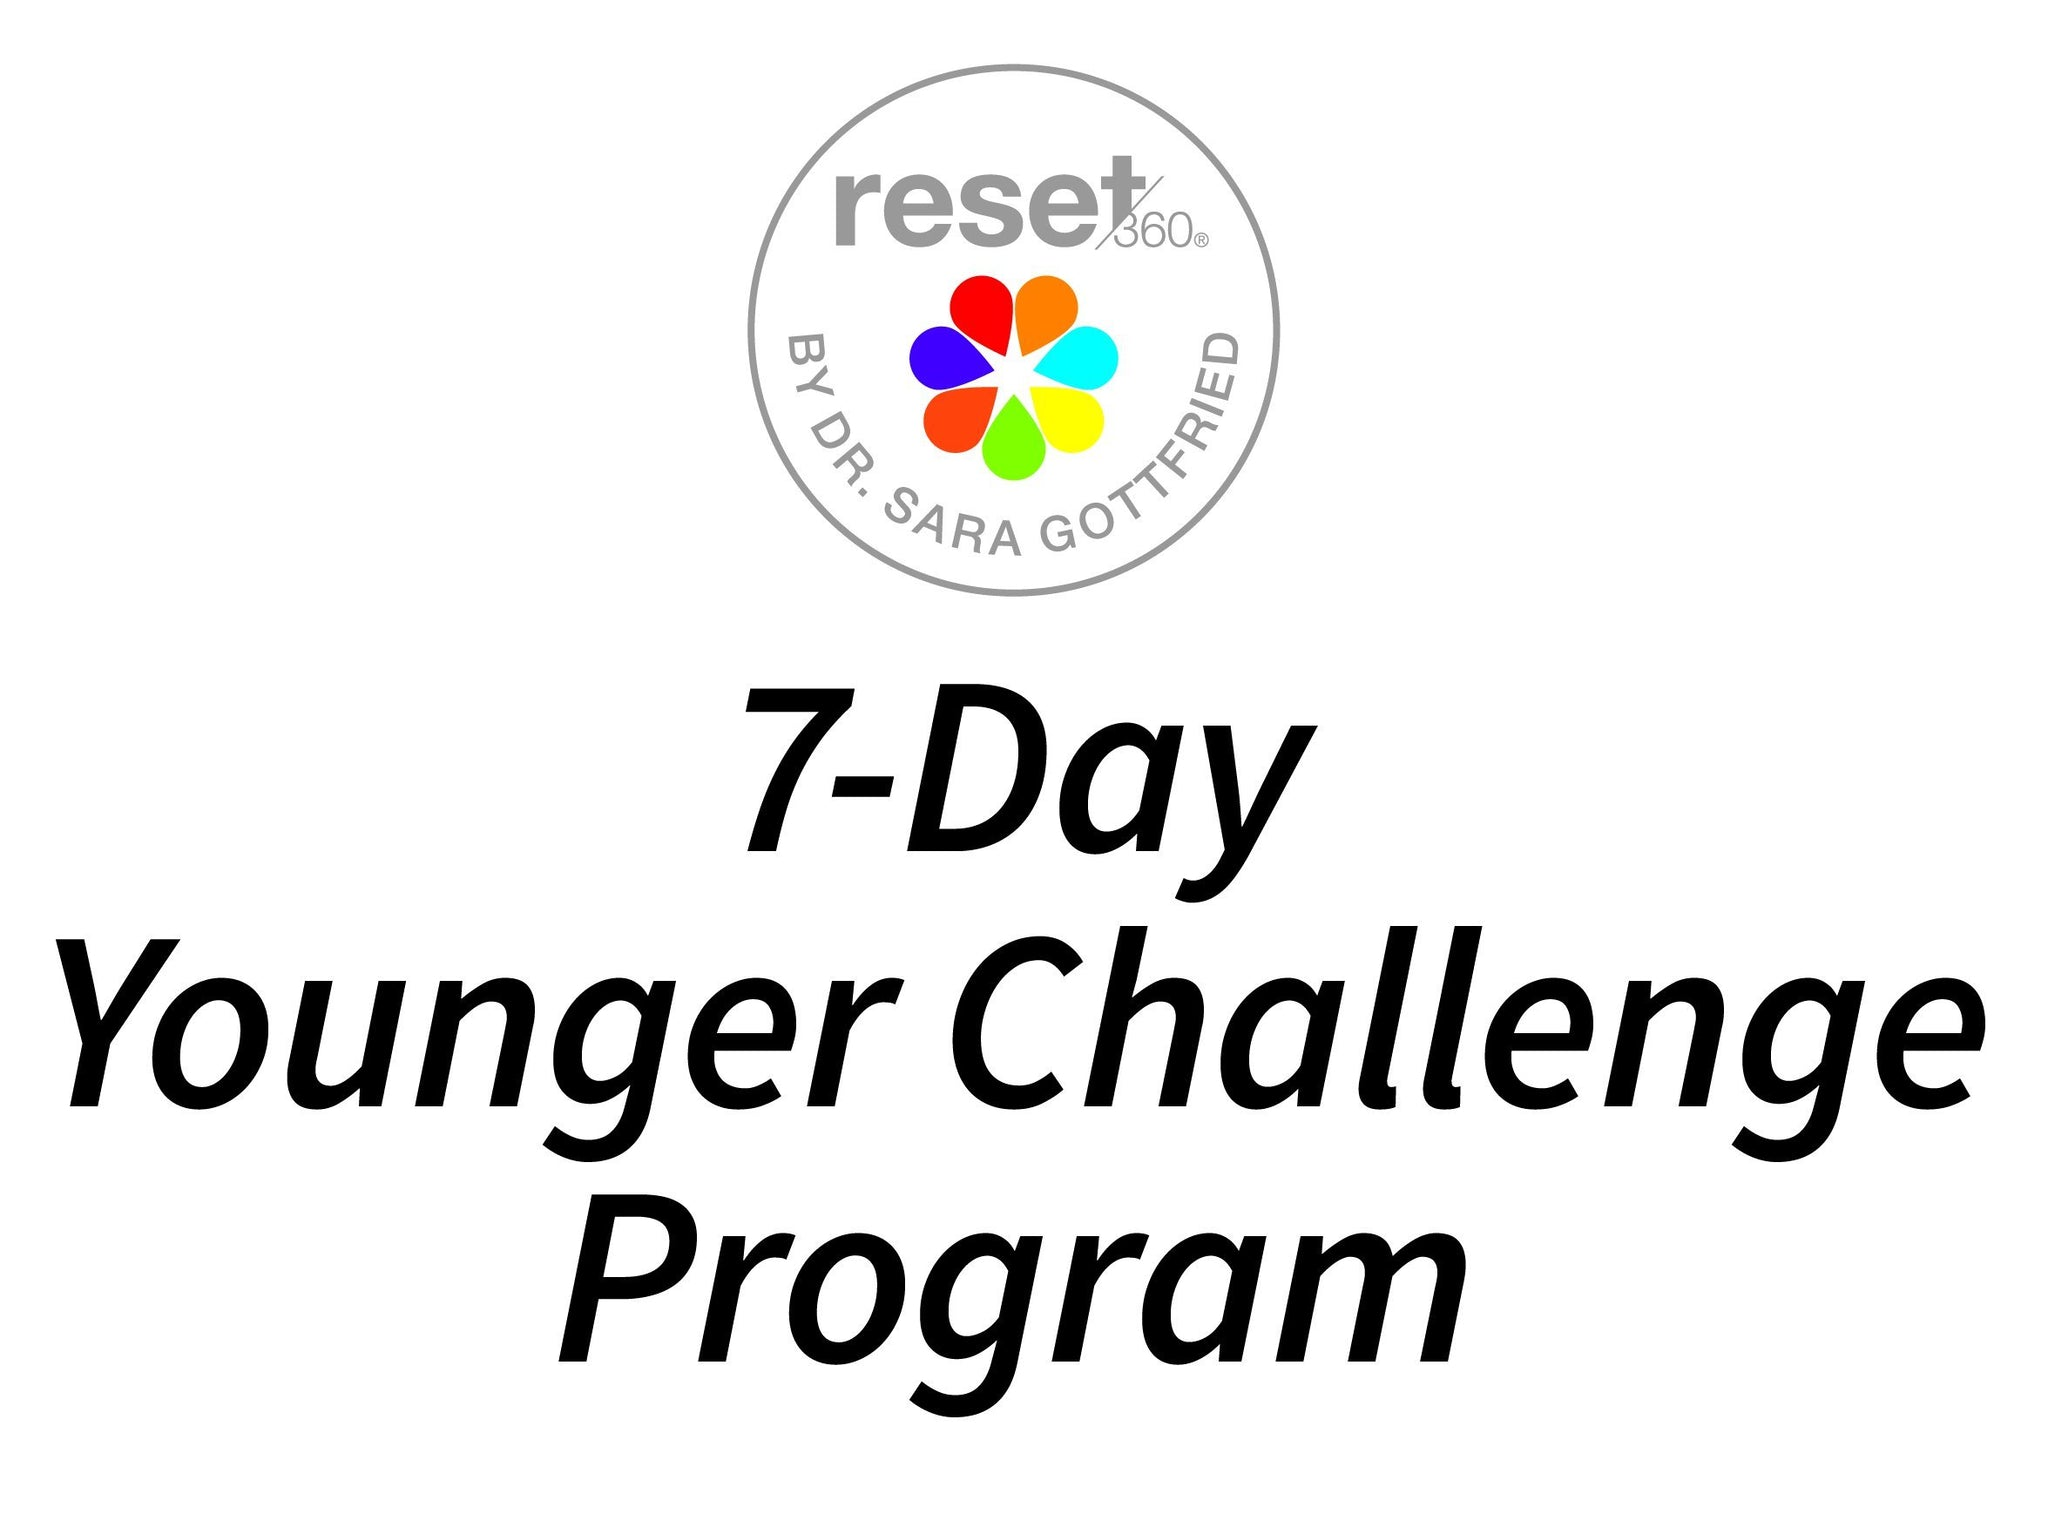 7-Day Younger Challenge